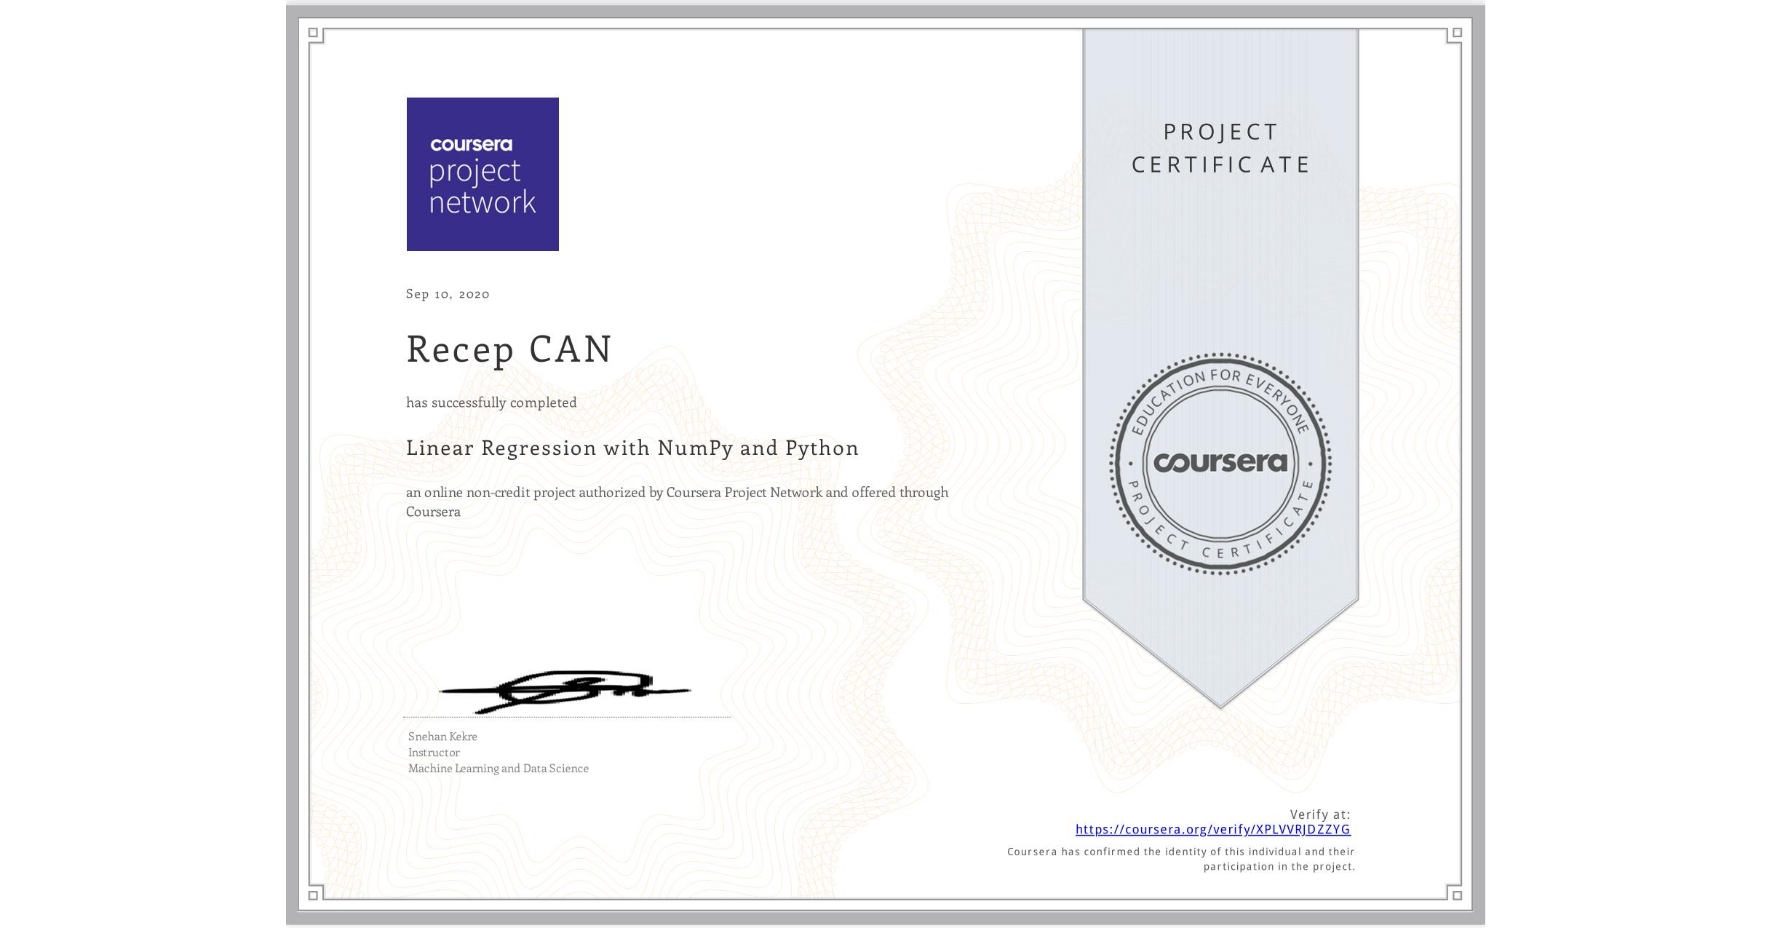 View certificate for Recep CAN, Linear Regression with NumPy and Python, an online non-credit course authorized by Coursera Project Network and offered through Coursera